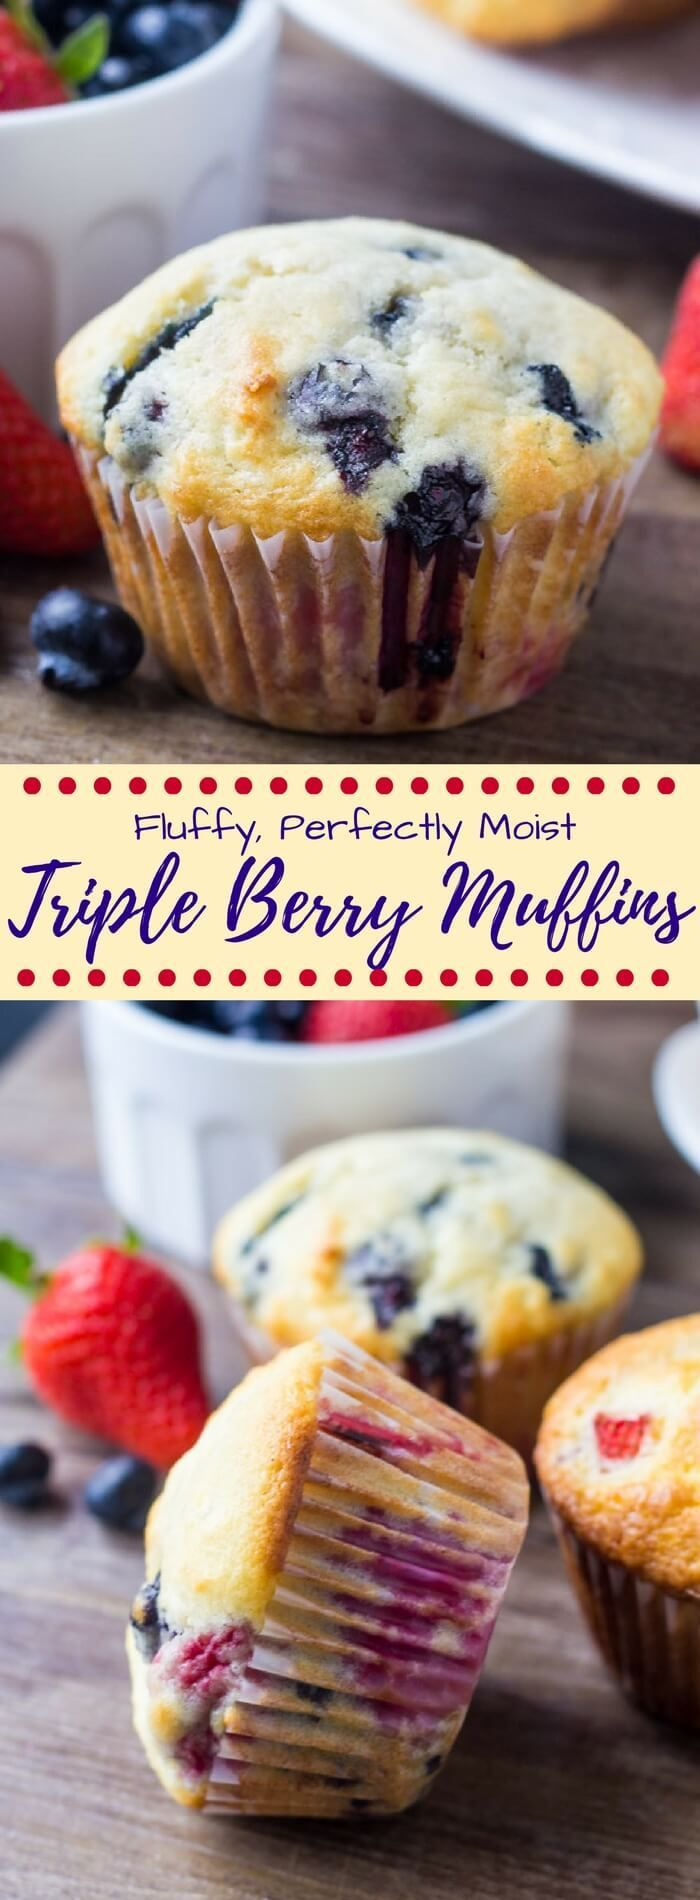 Triple berry muffins bursting with fresh fruit. Fluffy, buttery, super moist & oh so soft - these are the perfect summertime breakfast!